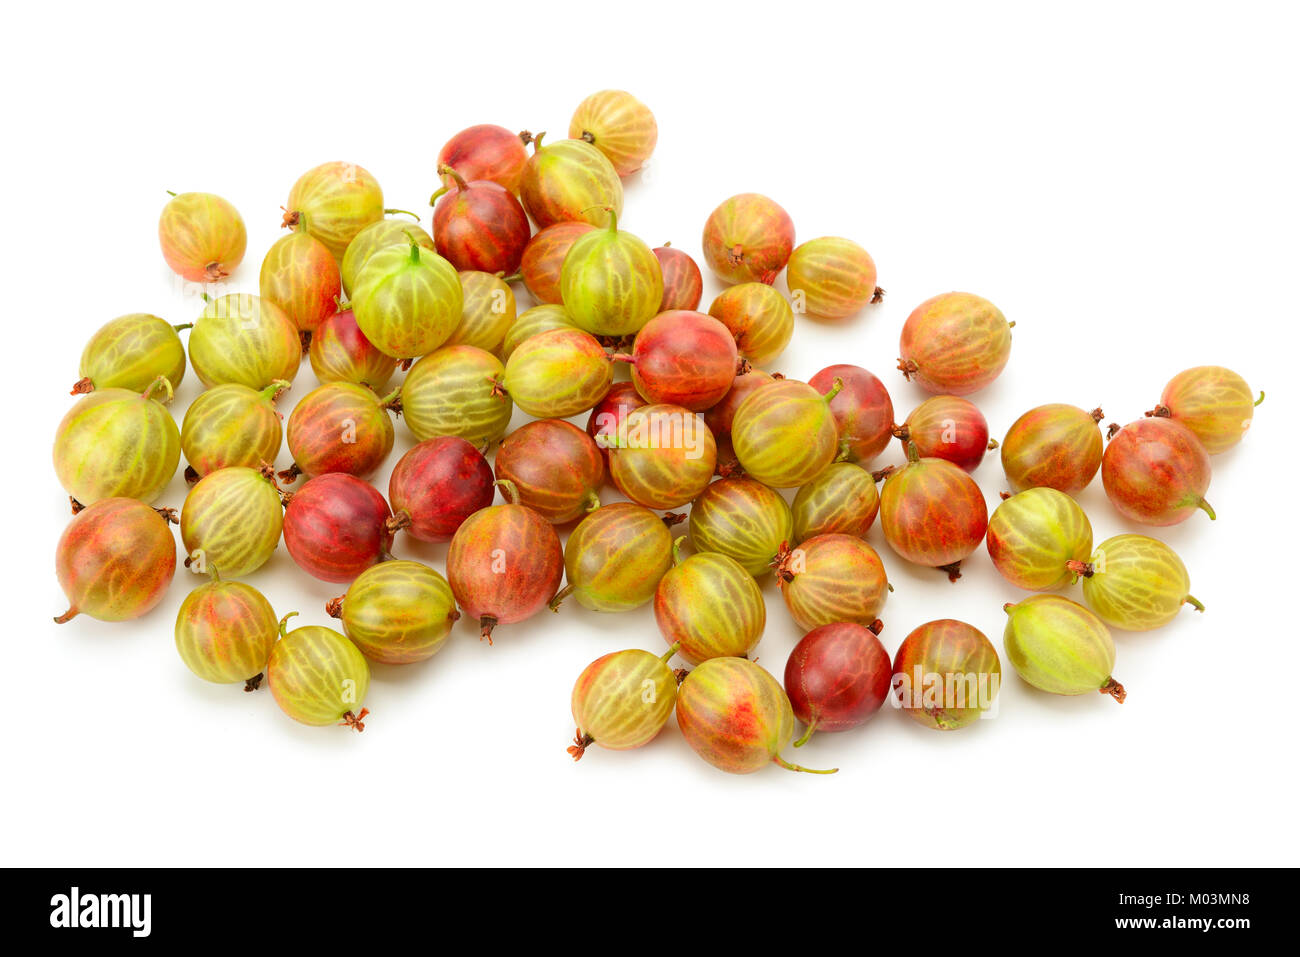 Big ripe gooseberries isolated on a white background - Stock Image